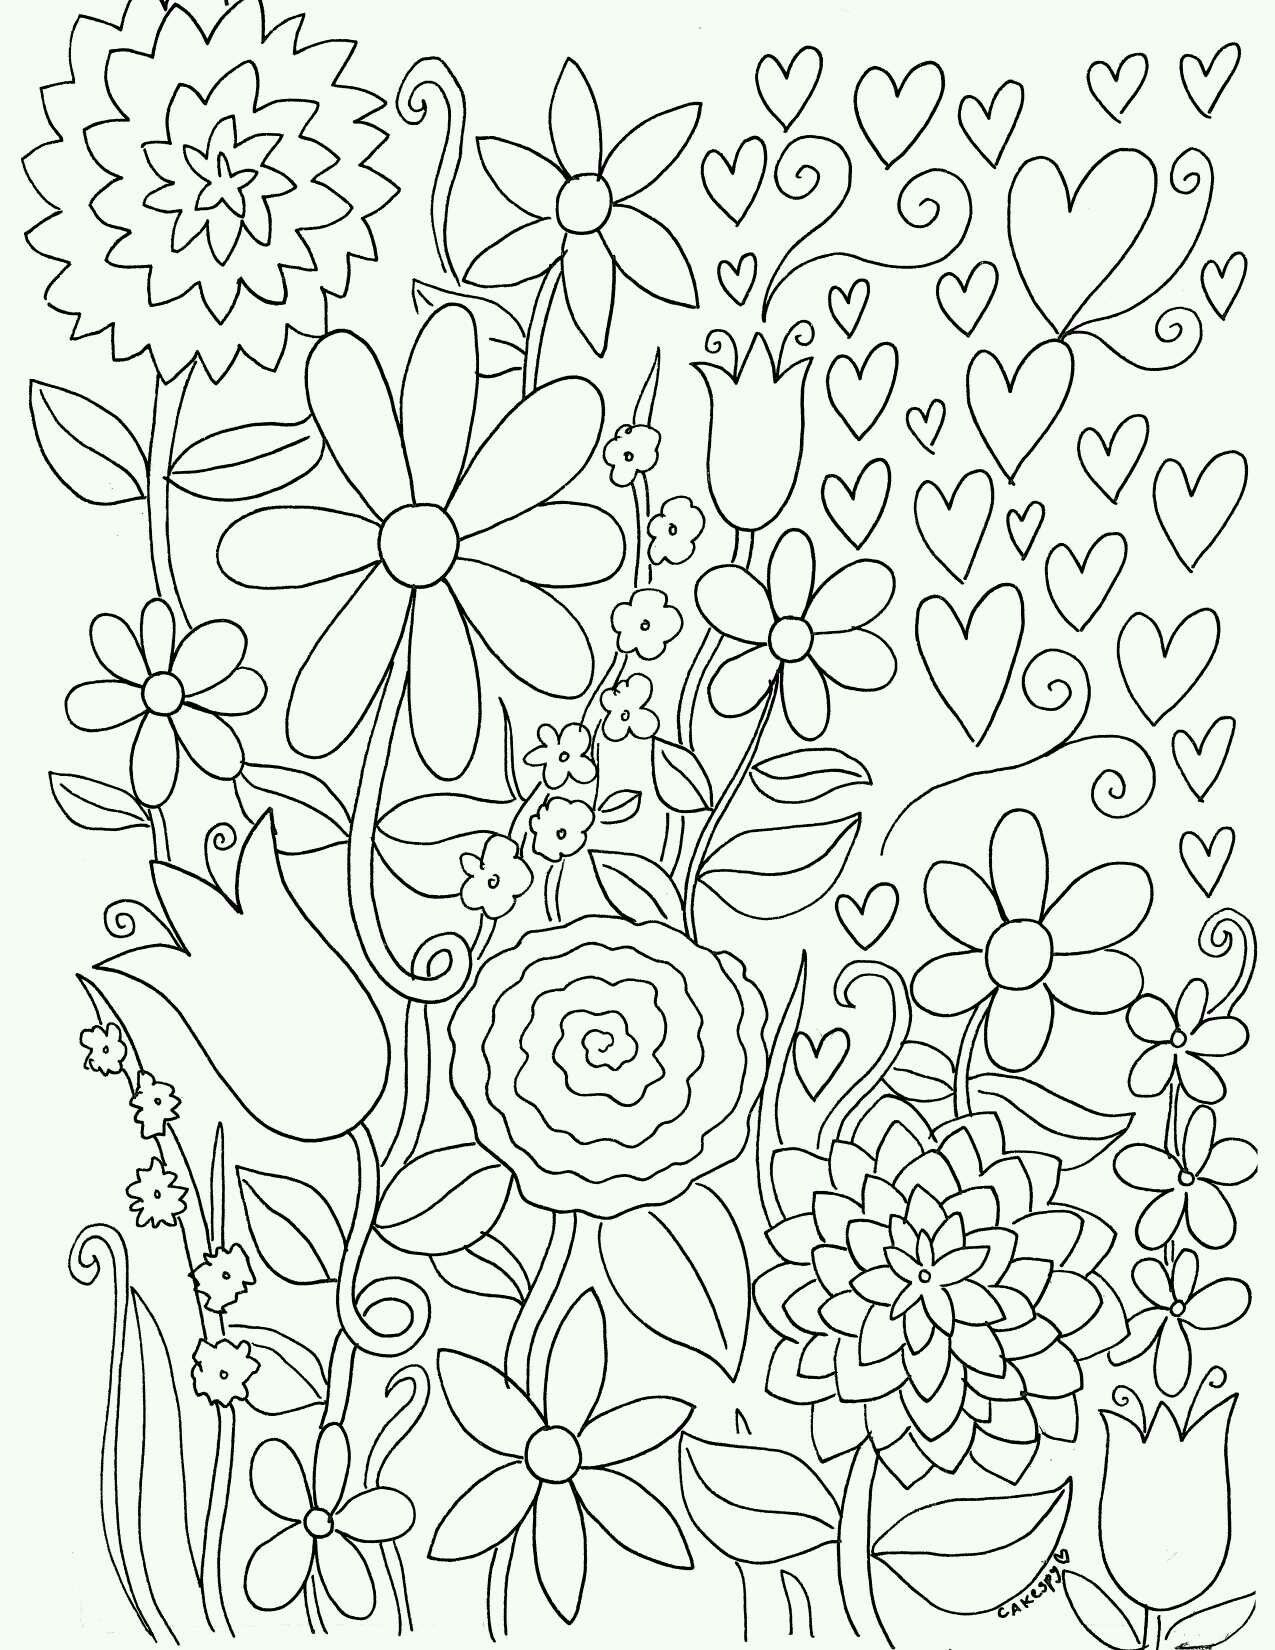 Pin by Светлана on Трафареты pinterest coloring pages coloring